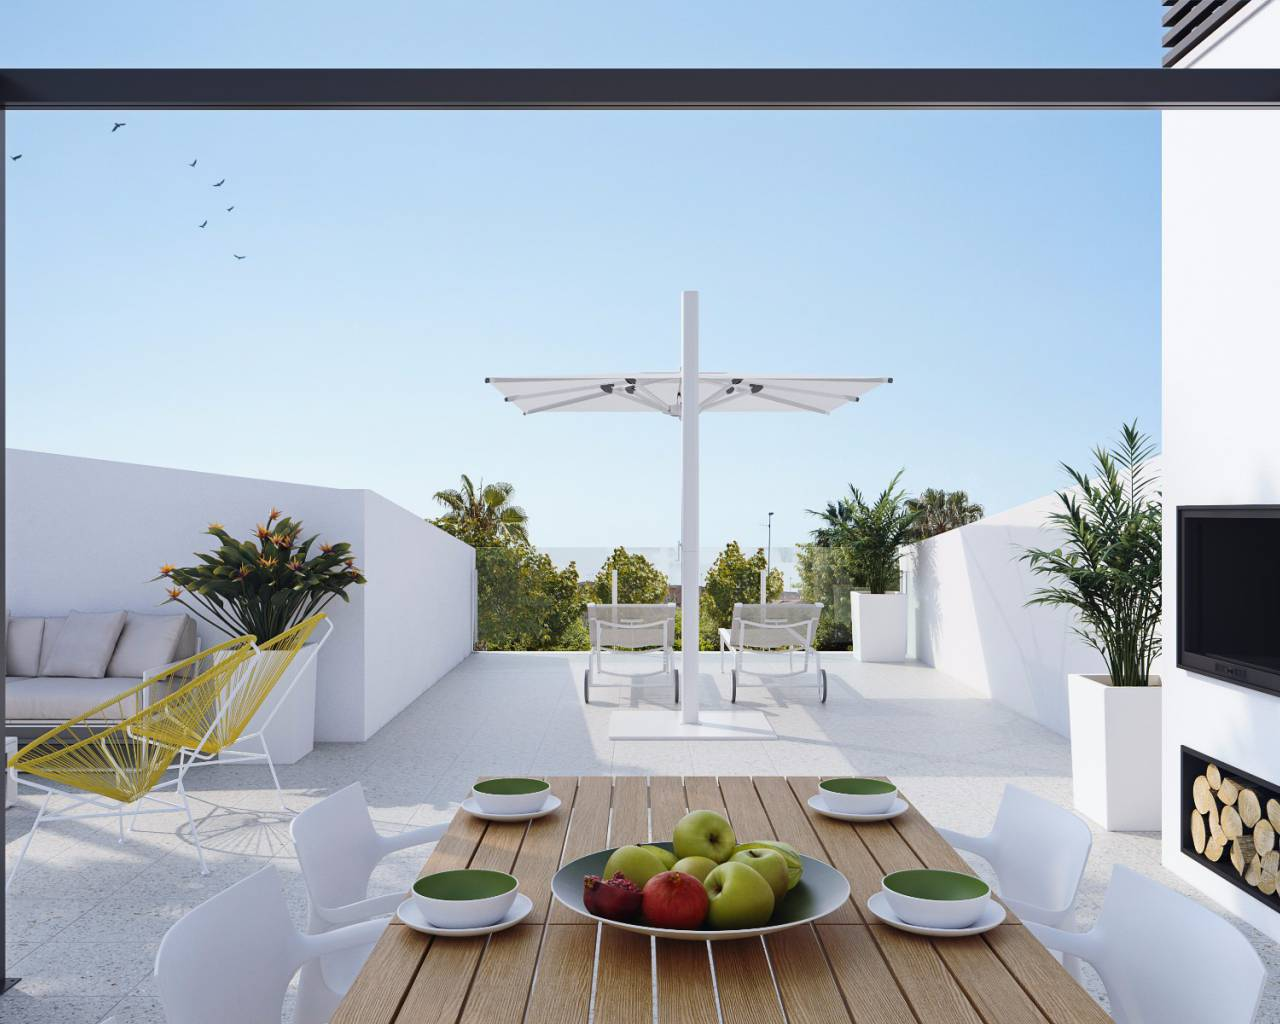 New build - Detached Villa - Los Alcazares - Centre. Beach